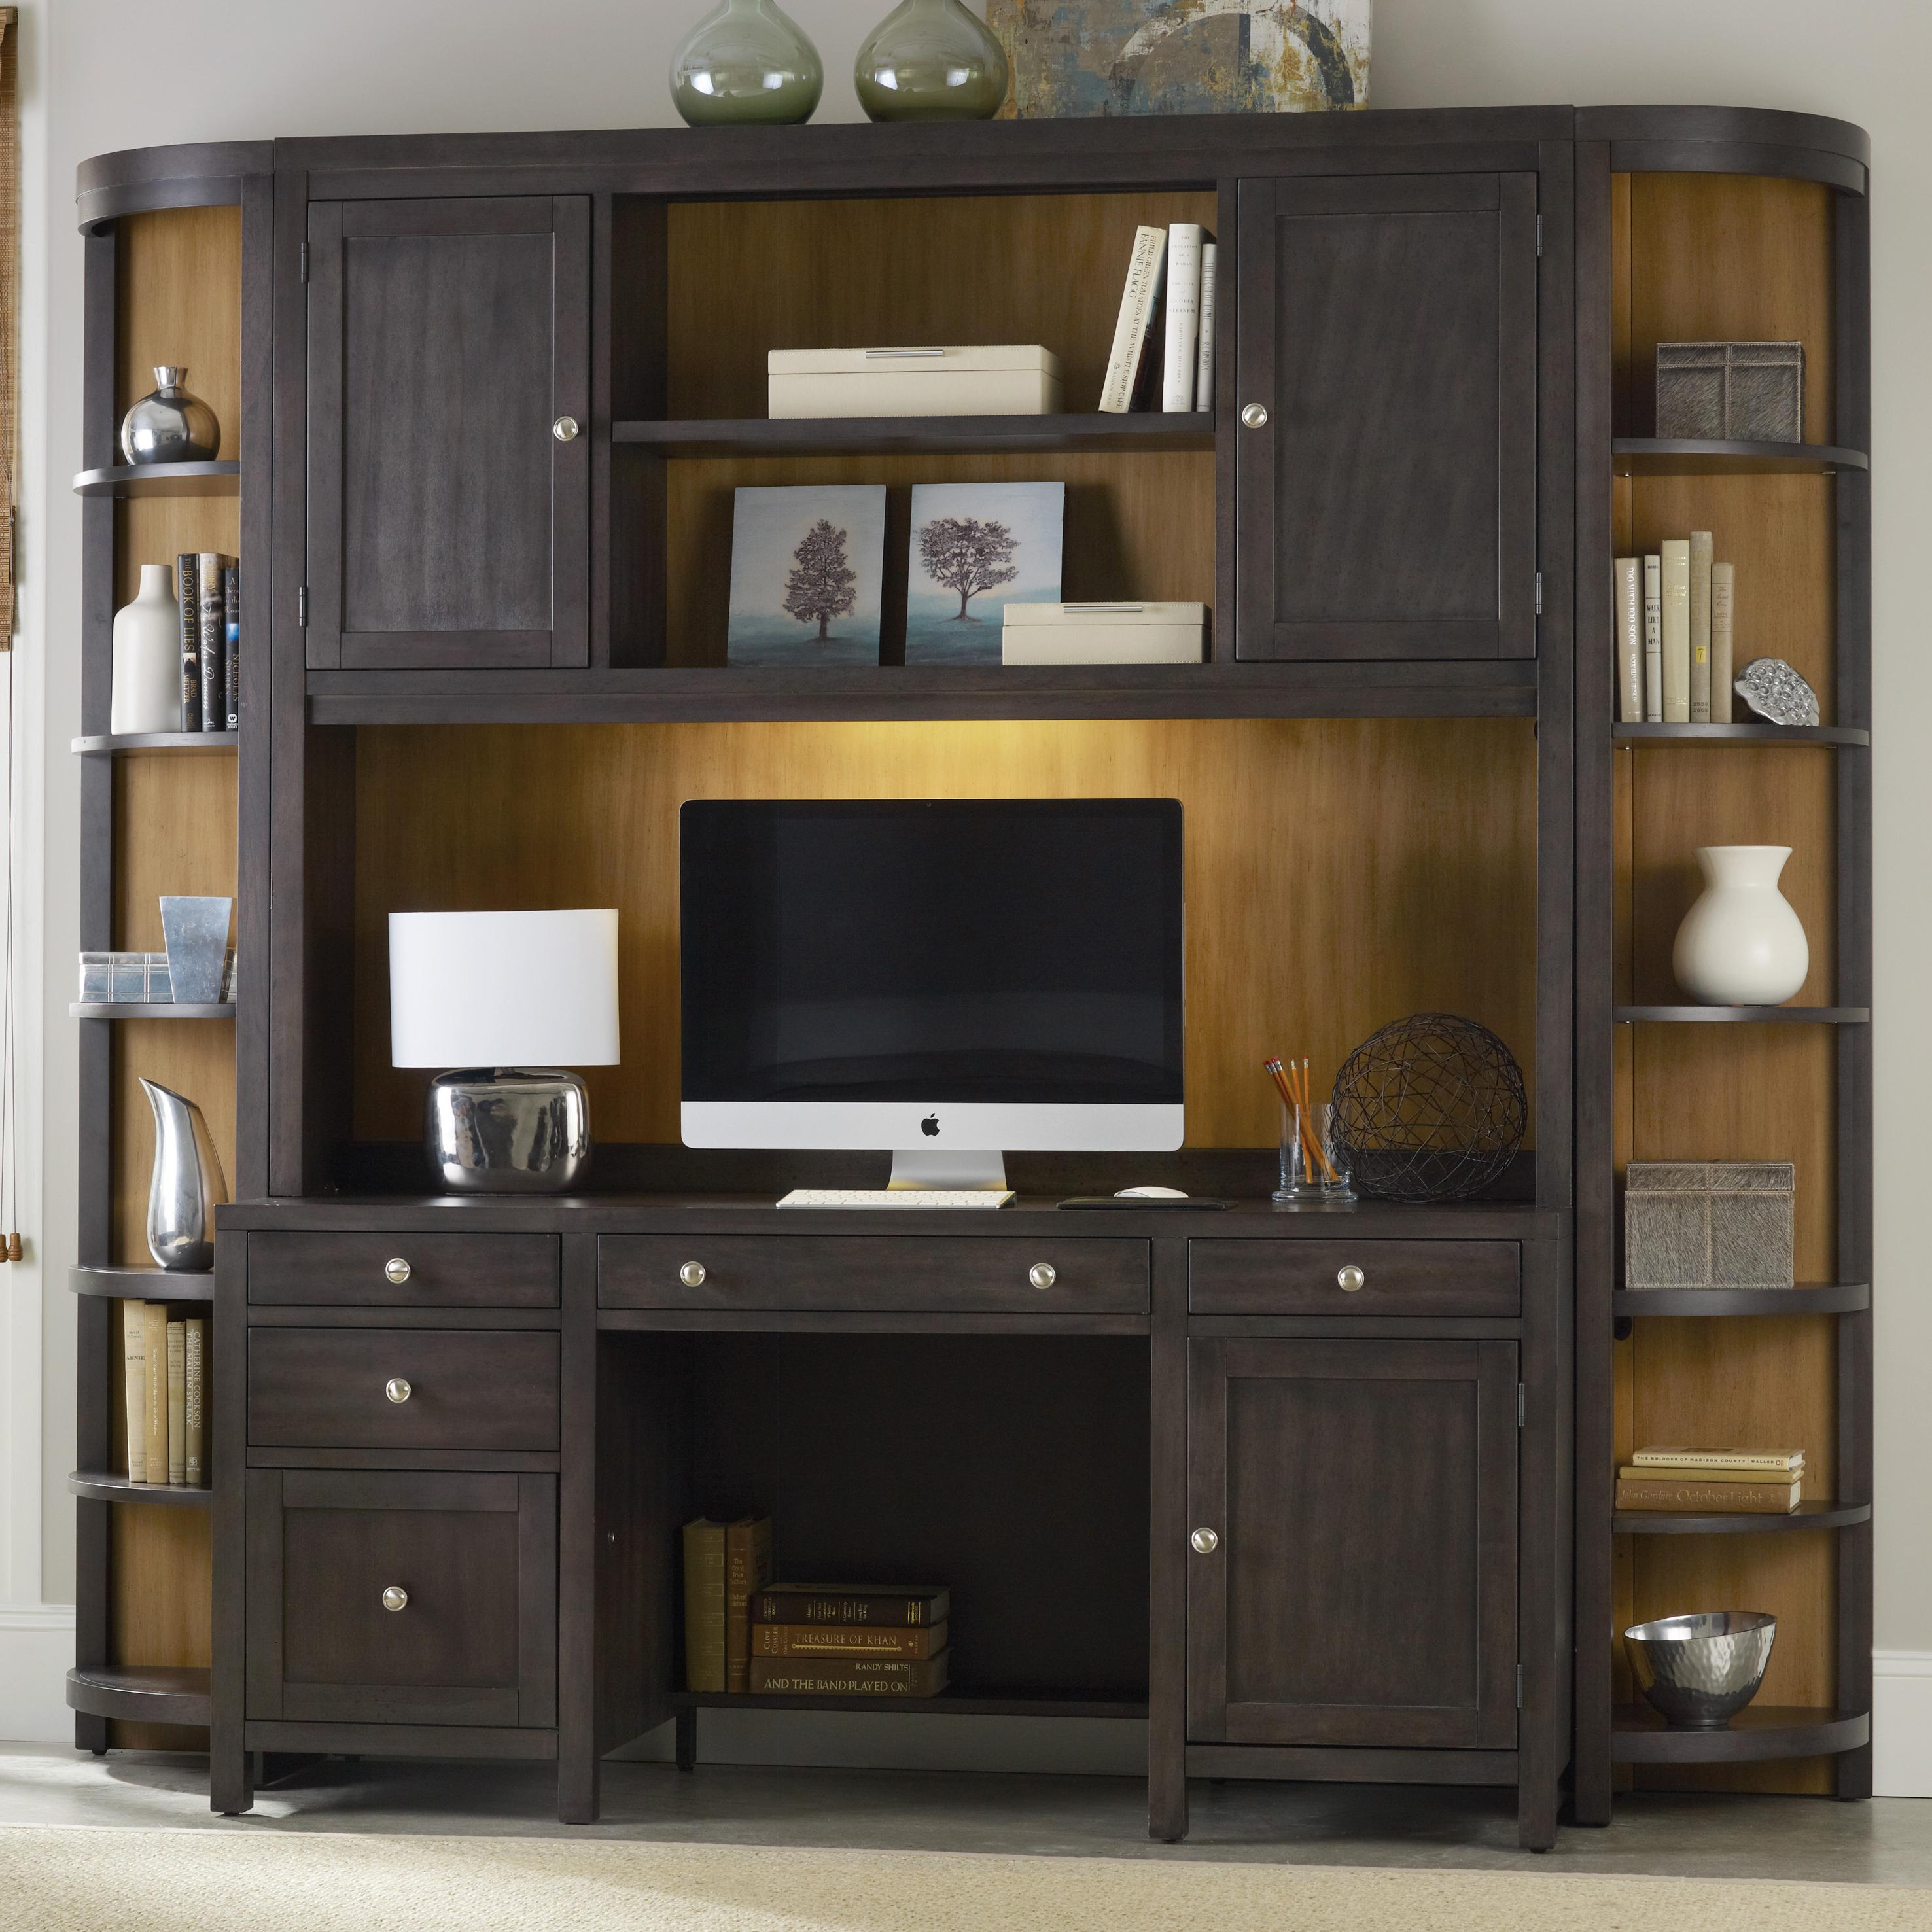 Furniture South Park Computer Credenza Wall Unit With Bar